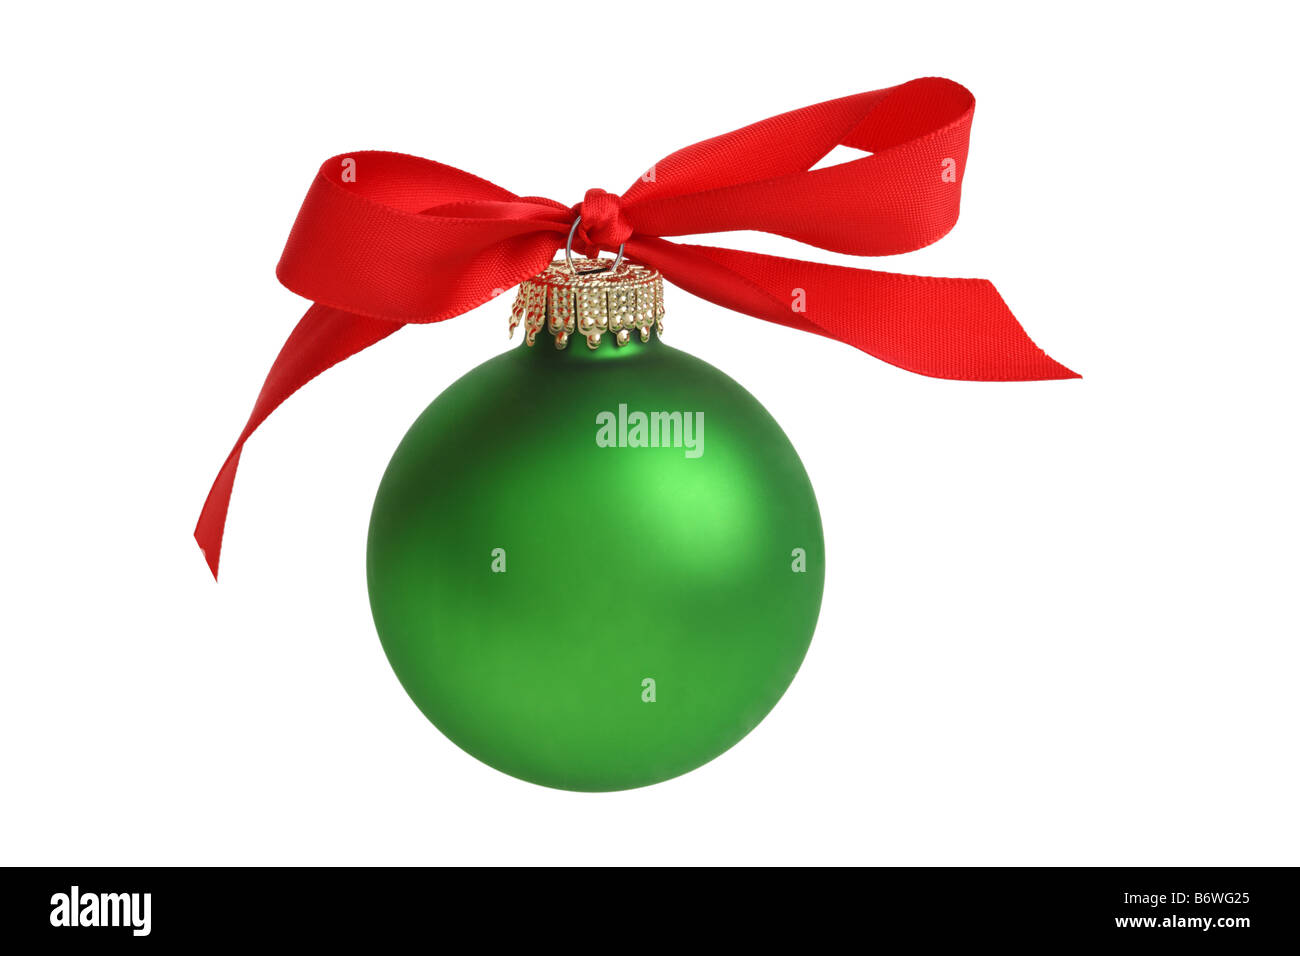 Christmas ornament with bow cut out isolated on white background - Stock Image